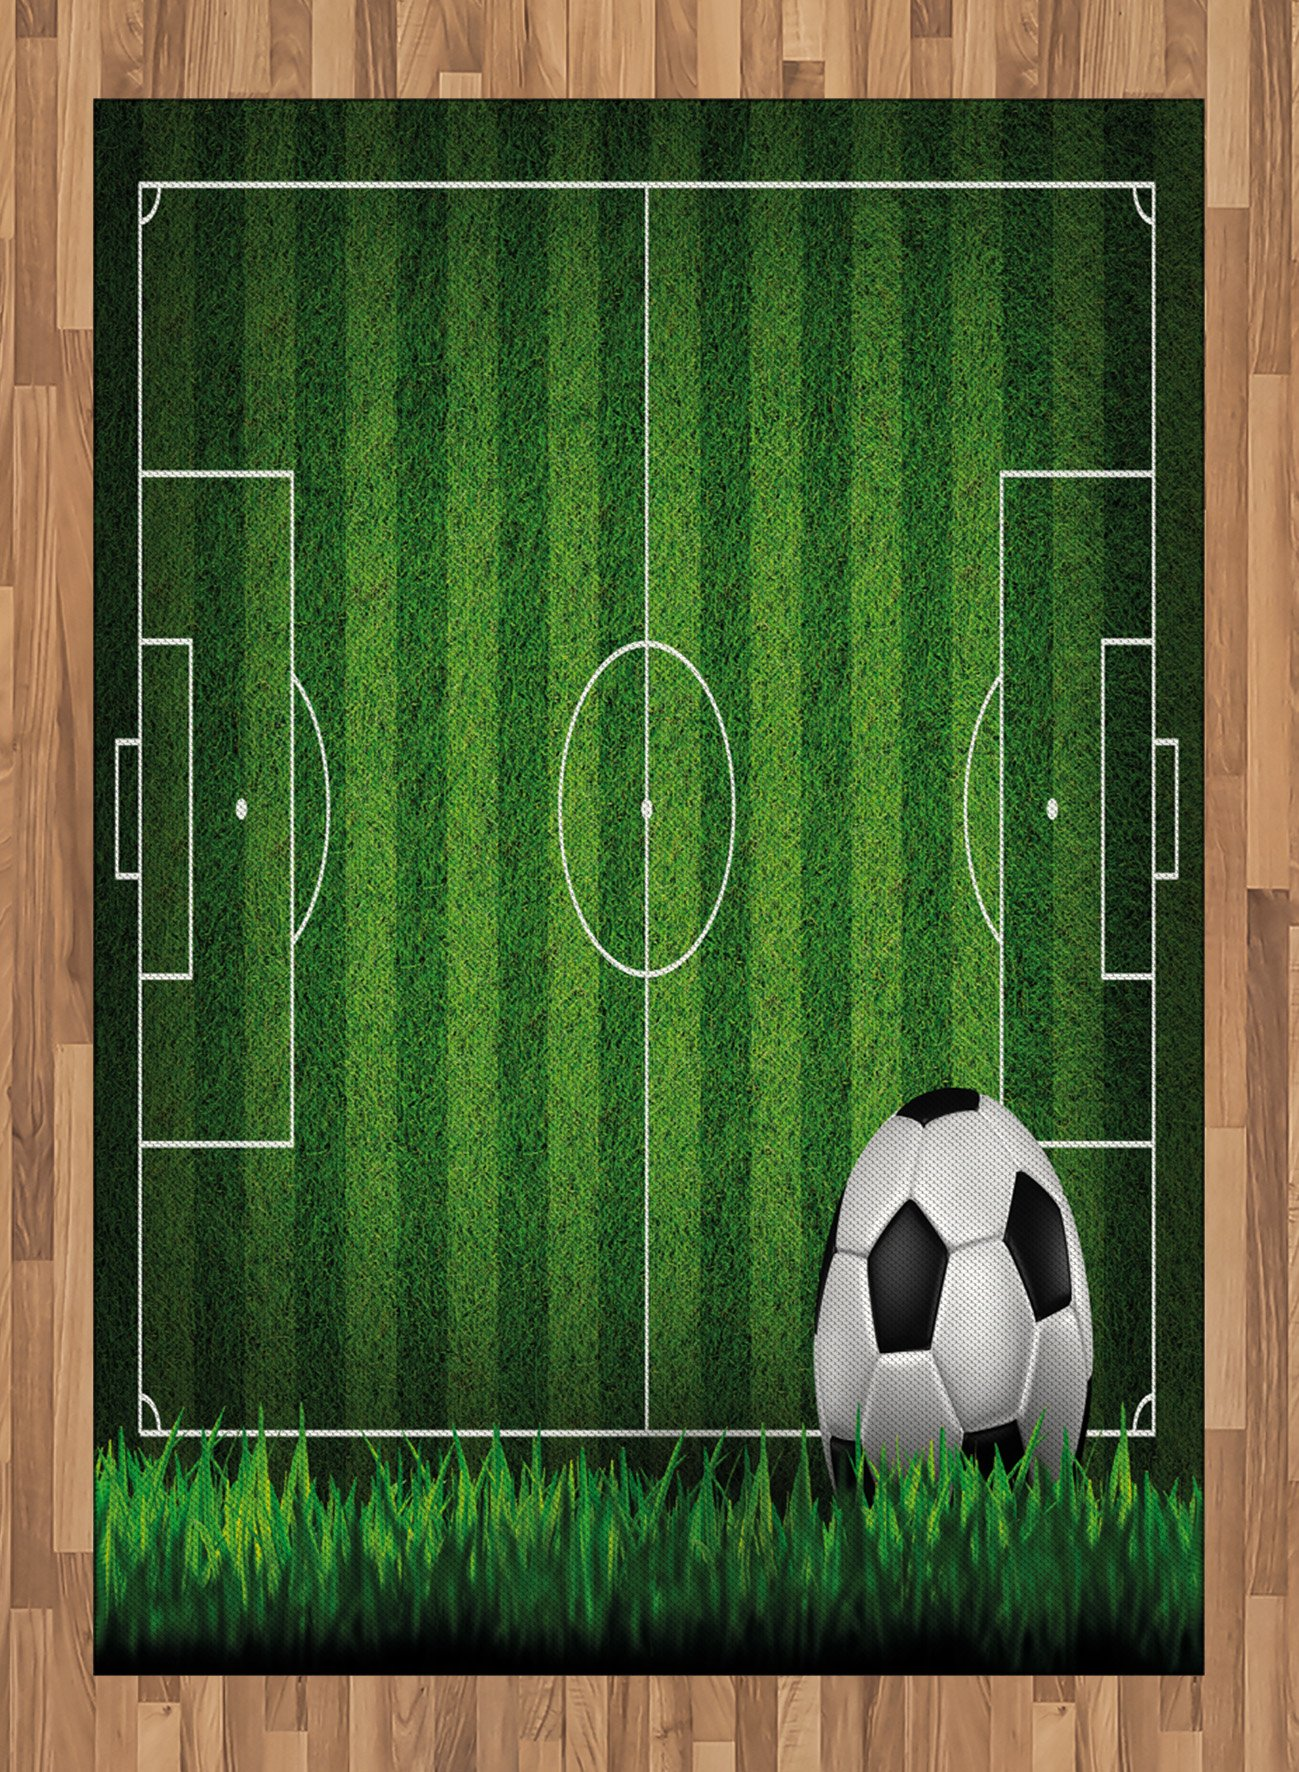 Boy's Room Area Rug by Lunarable, Green Grass Field Soccer Playground with the Ball Scheme Stripes Strategy, Flat Woven Accent Rug for Living Room Bedroom Dining Room, 5.2 x 7.5 FT, Green Black White